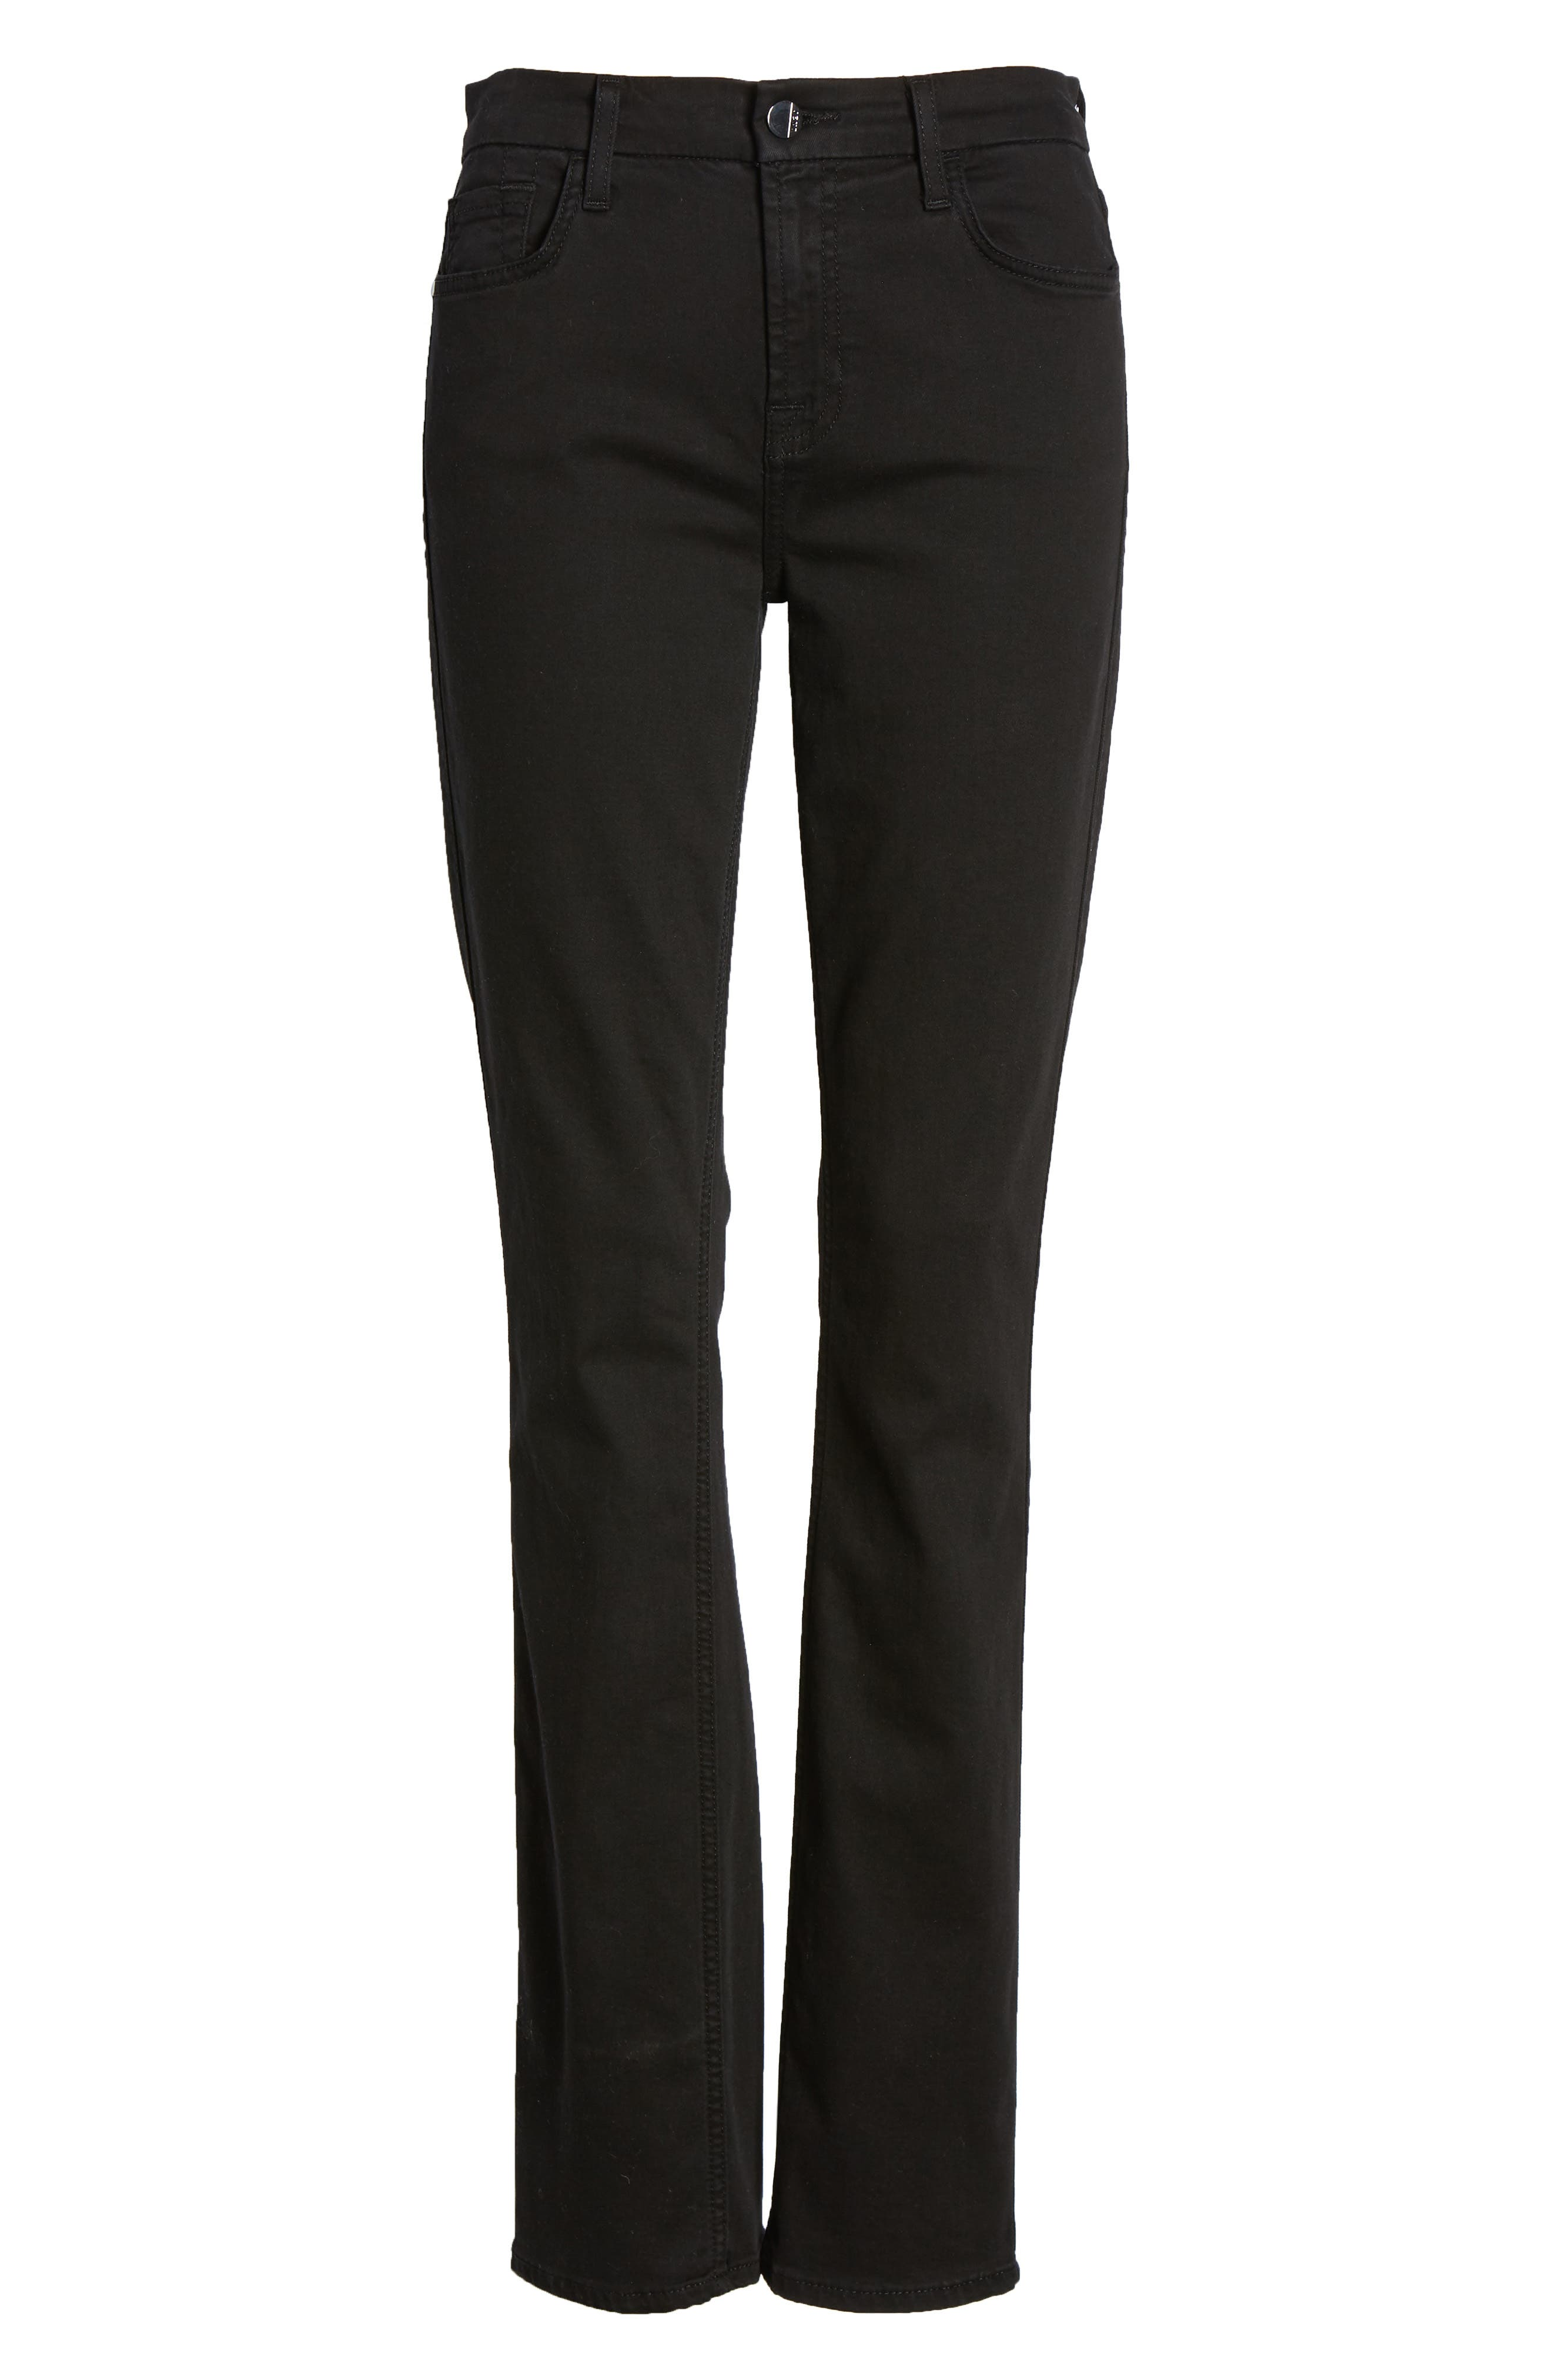 JEN7 BY 7 FOR ALL MANKIND, Stretch Slim Straight Leg Jeans, Alternate thumbnail 6, color, CLASSIC BLACK NOIR